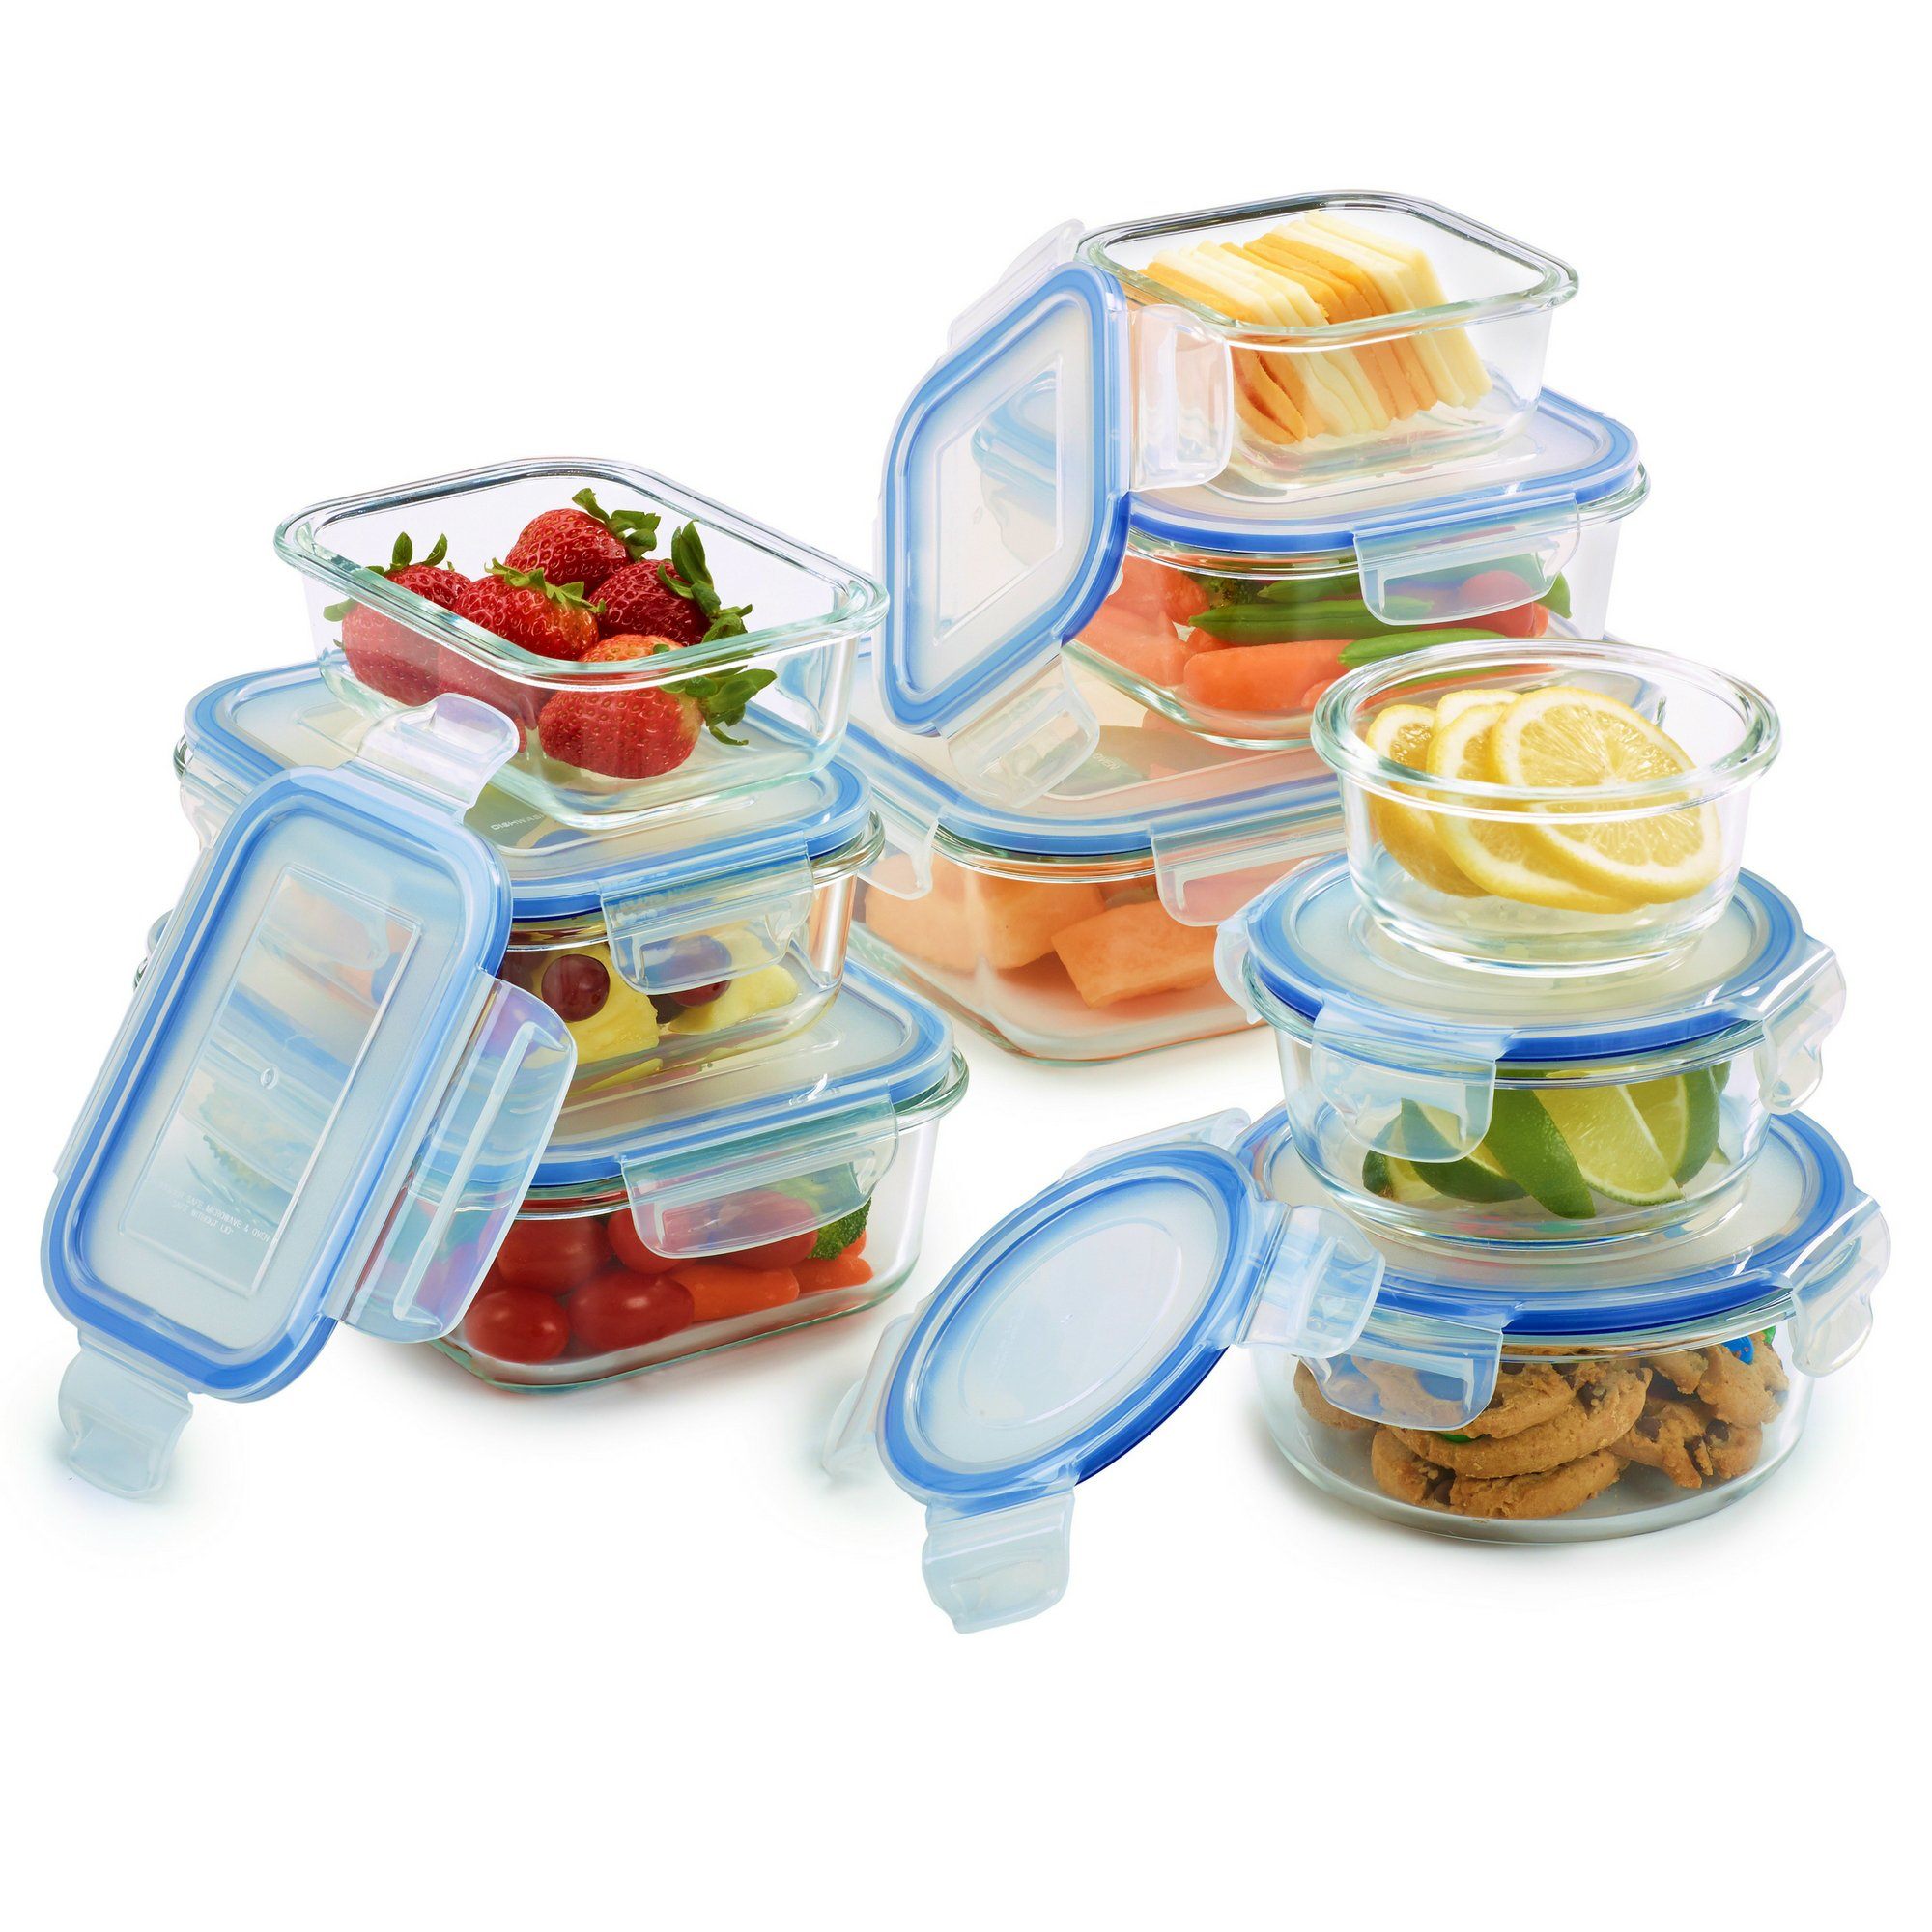 18 Piece Glass Food Storage Container Set - BPA Free - Use for Home, Kitchen and Restaurant - Snap On Lids Keep Food Fresh with Airtight Seal Safe for Dishwasher by 1790 (Image #8)